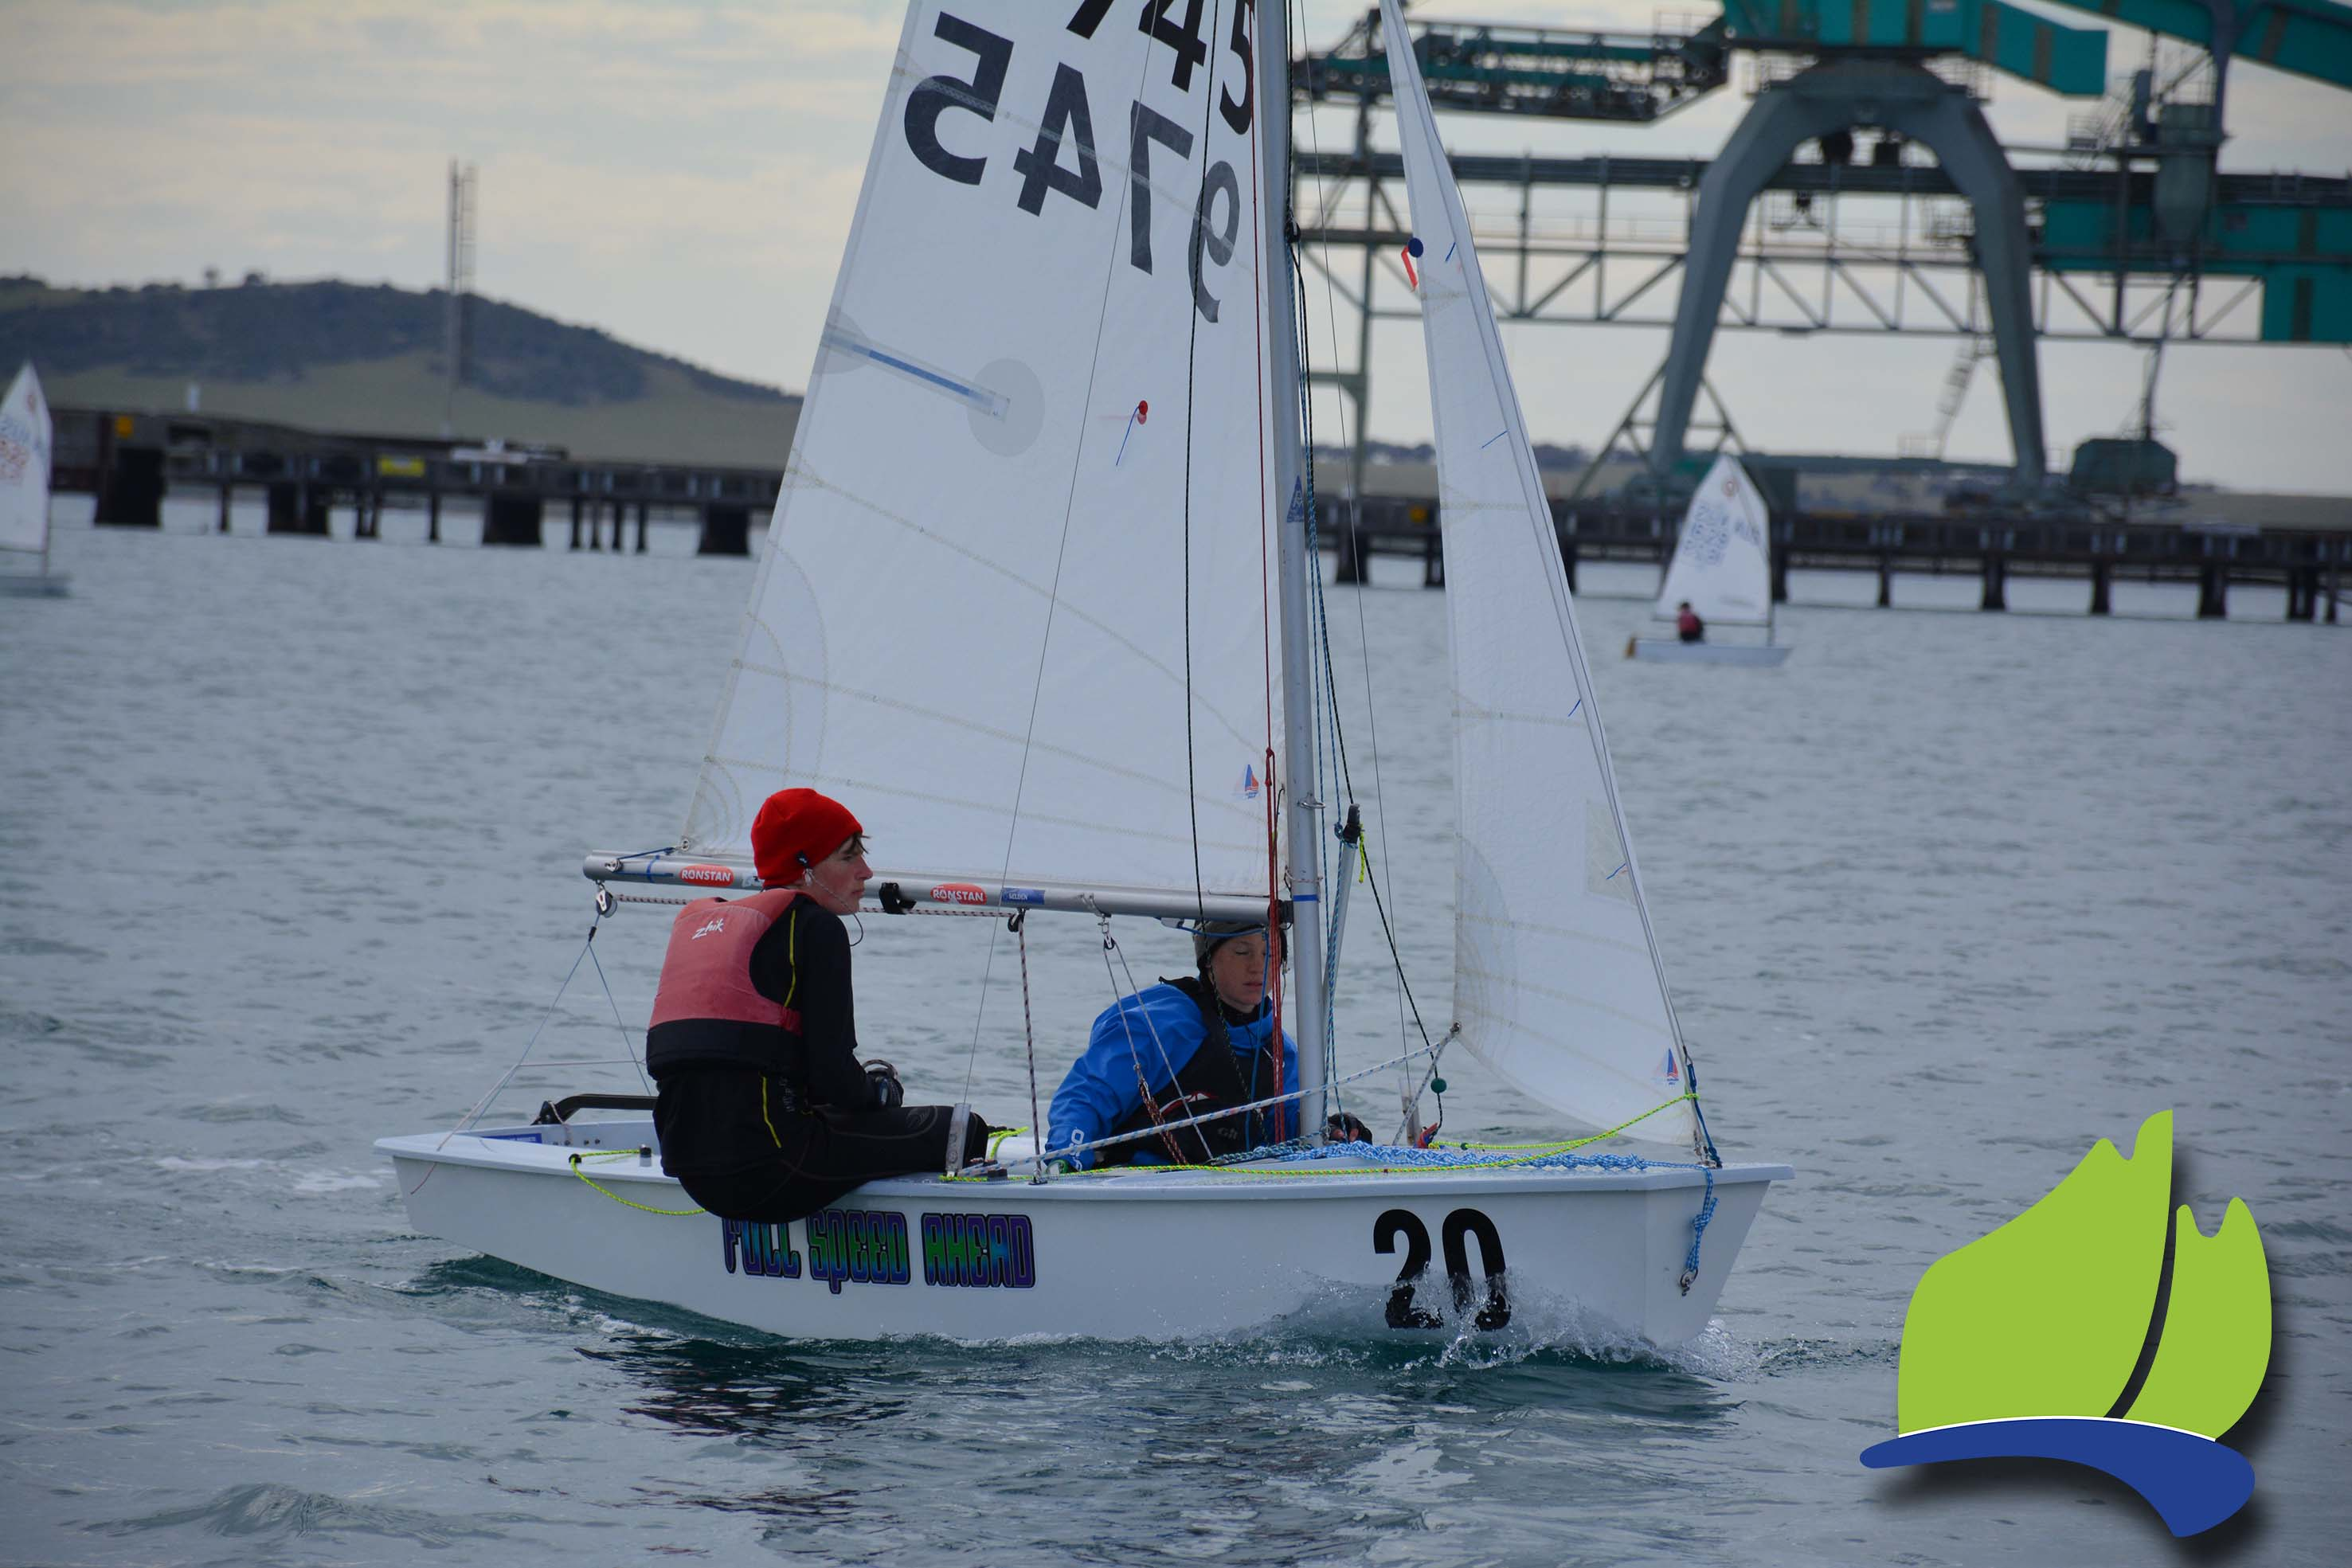 Sam Paynter and Gil Casanova in Full Speed Ahead in preparation for the upcoming world championship.